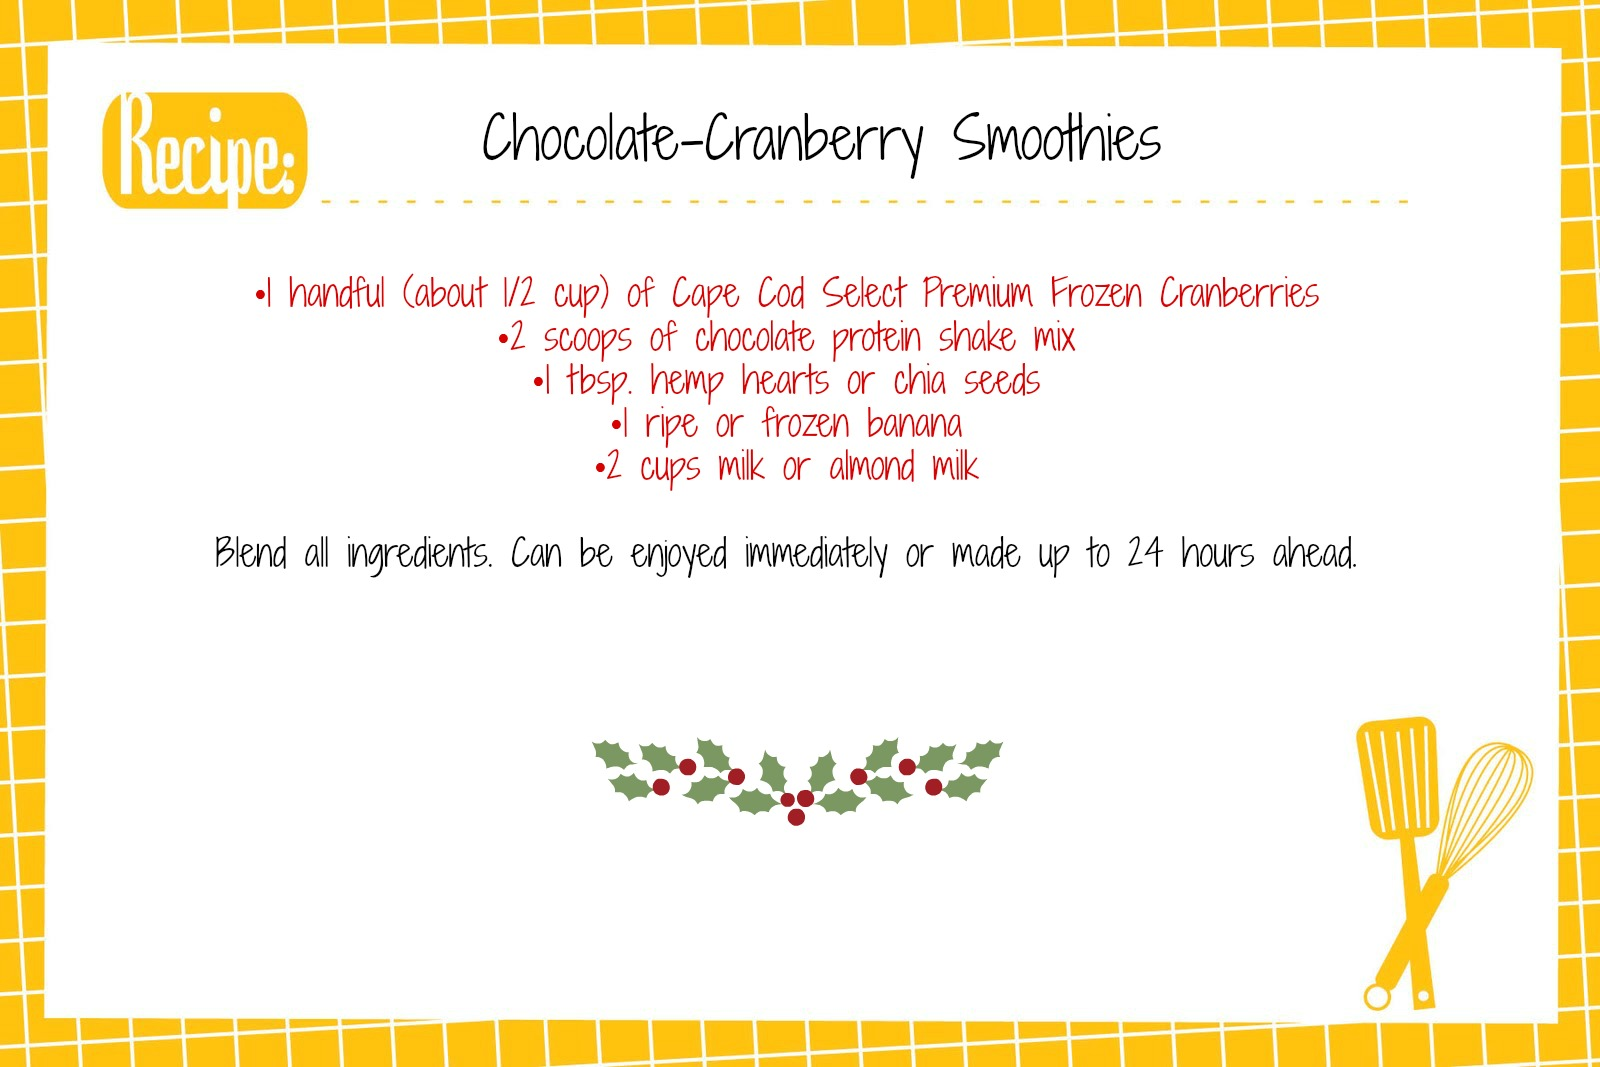 Contests starbrights kitchen recipe card smoothie yadclub Gallery